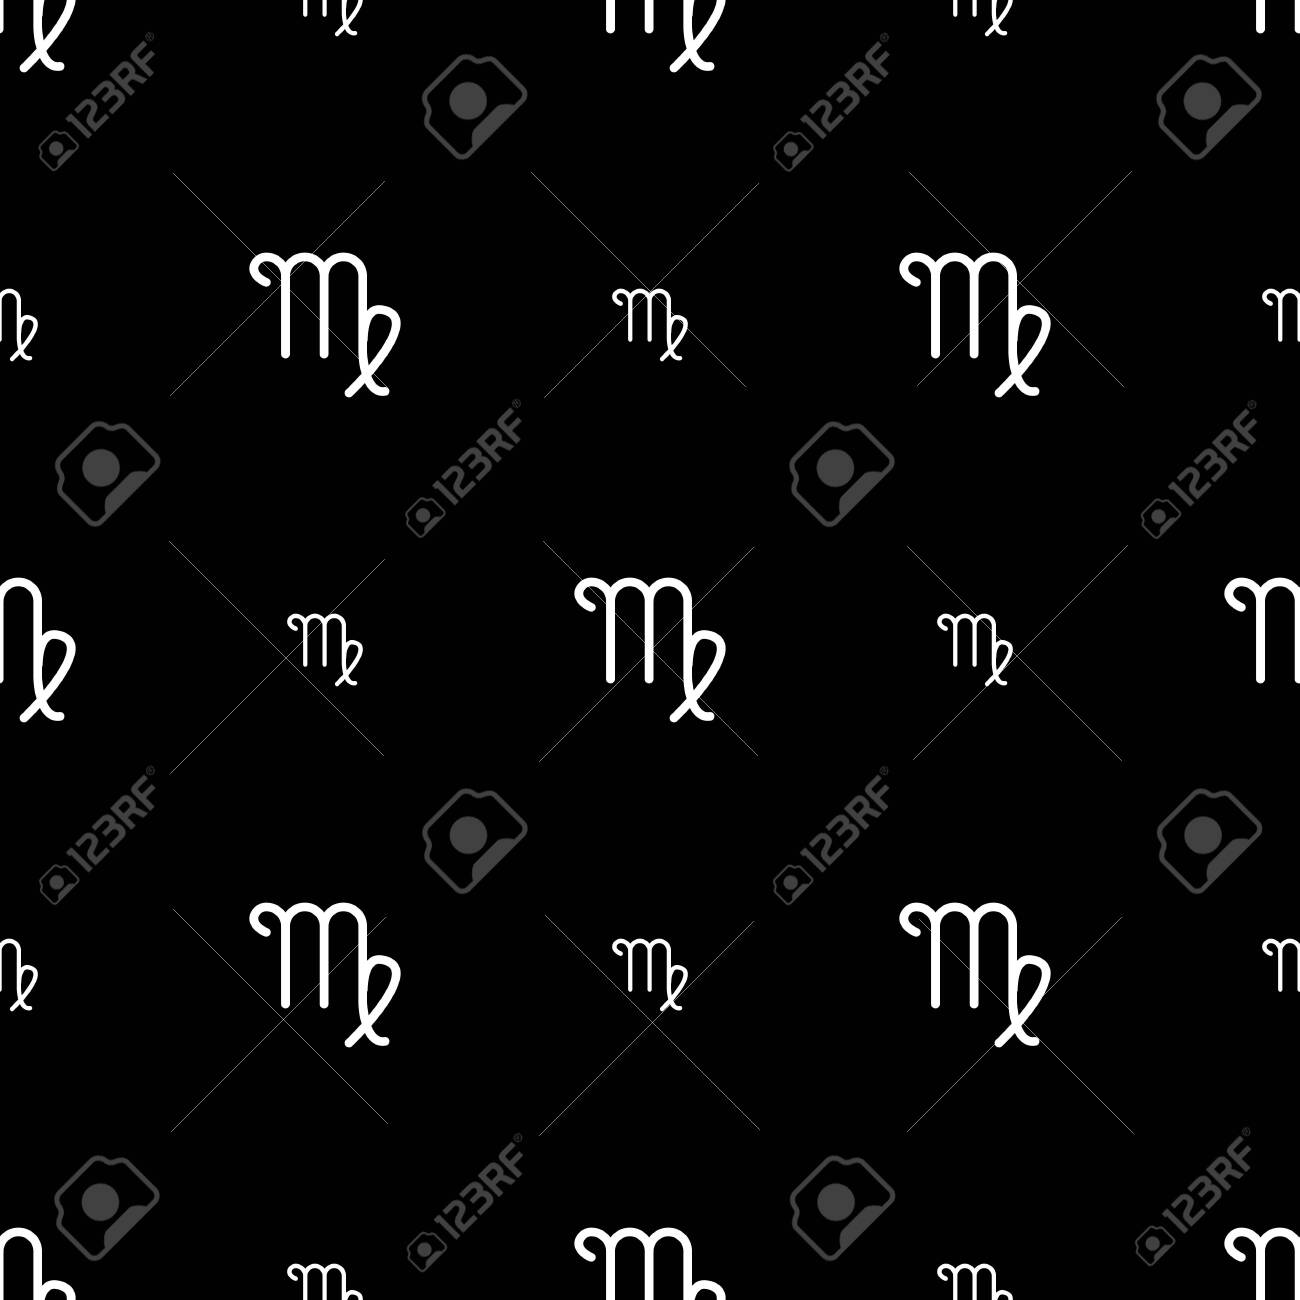 139166871 virgo zodiac sign horoscope seamless pattern texture for wallpapers fabric wrap web page backgrounds